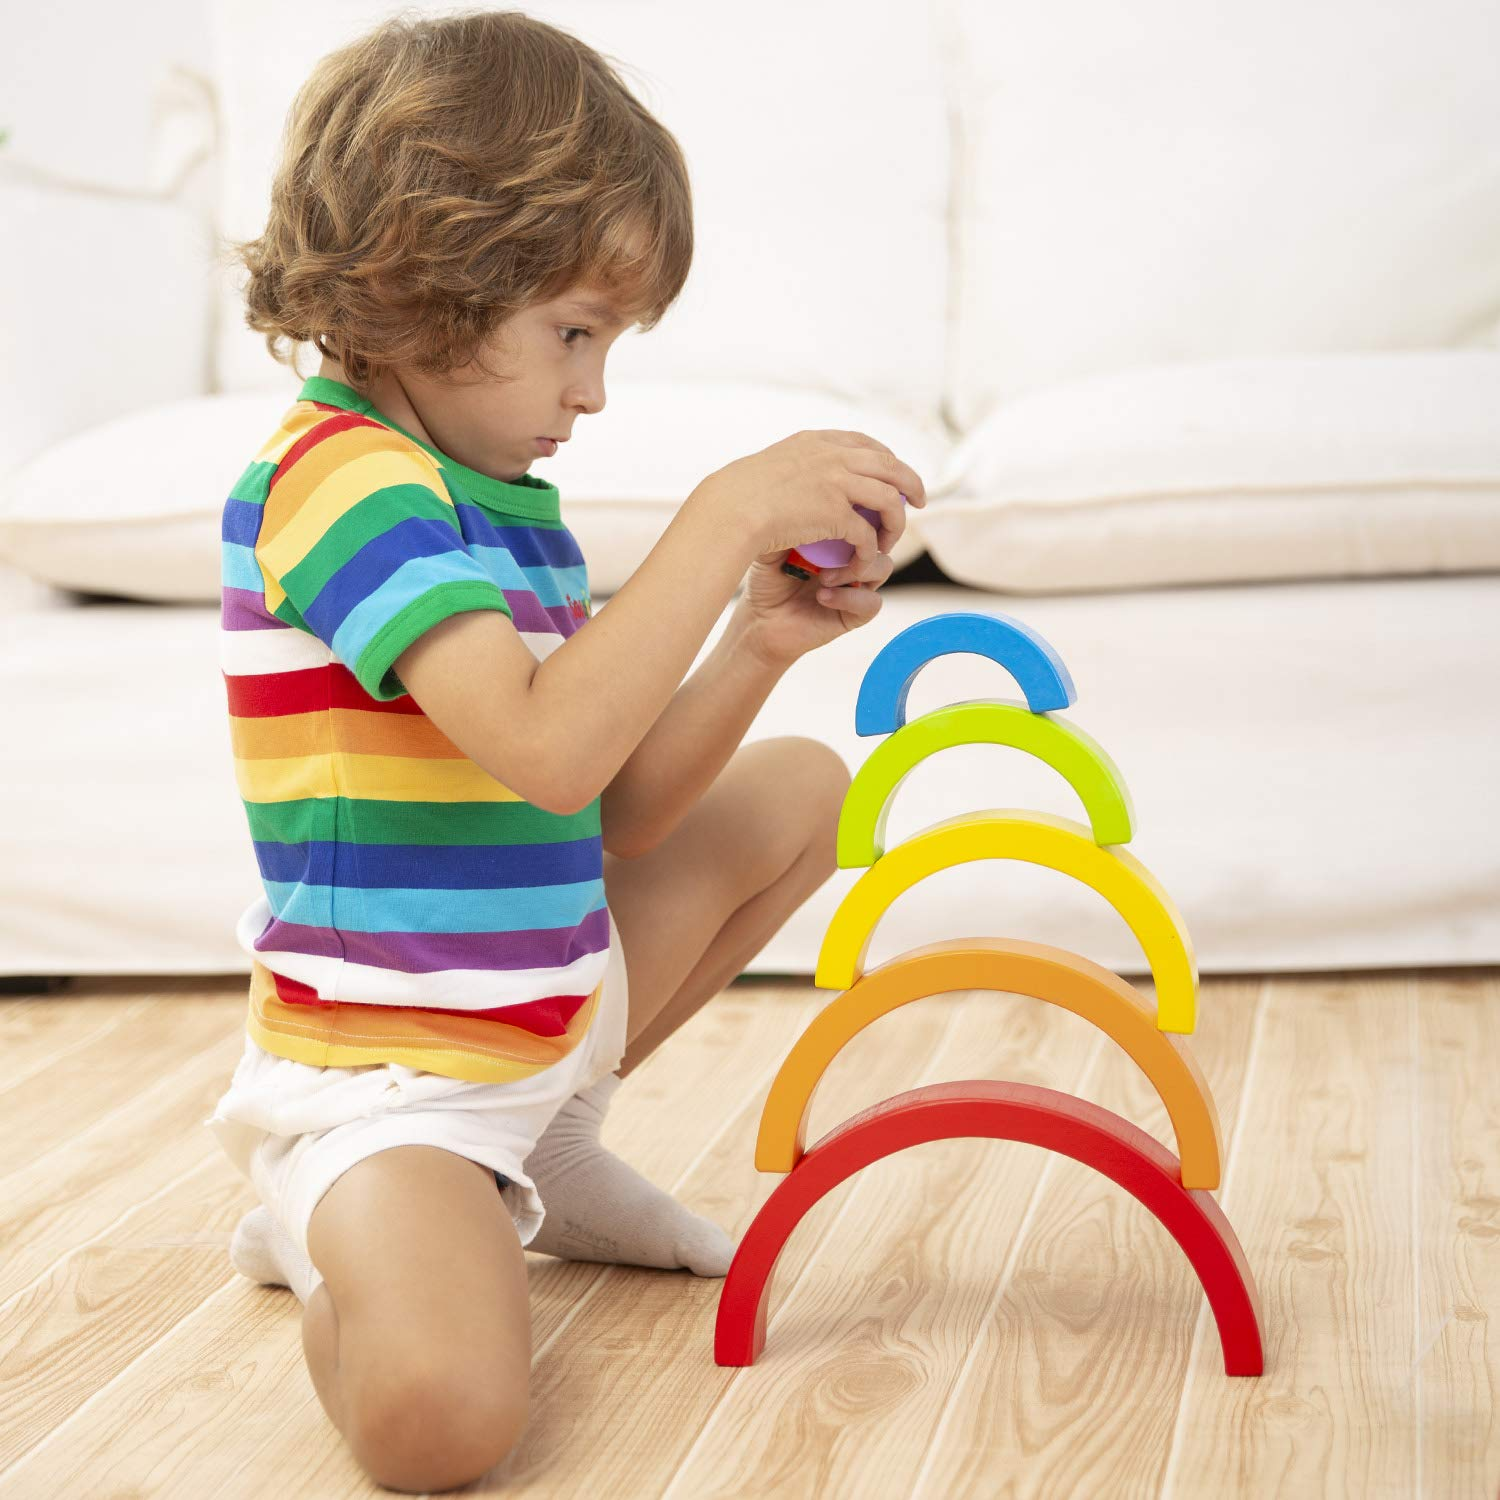 🔥HOLIDAY SEASON PROMOTION—Buy 3 Get 1 Free - Buy 5 Get 3 Free 🎁Stacking Wooden Rainbow